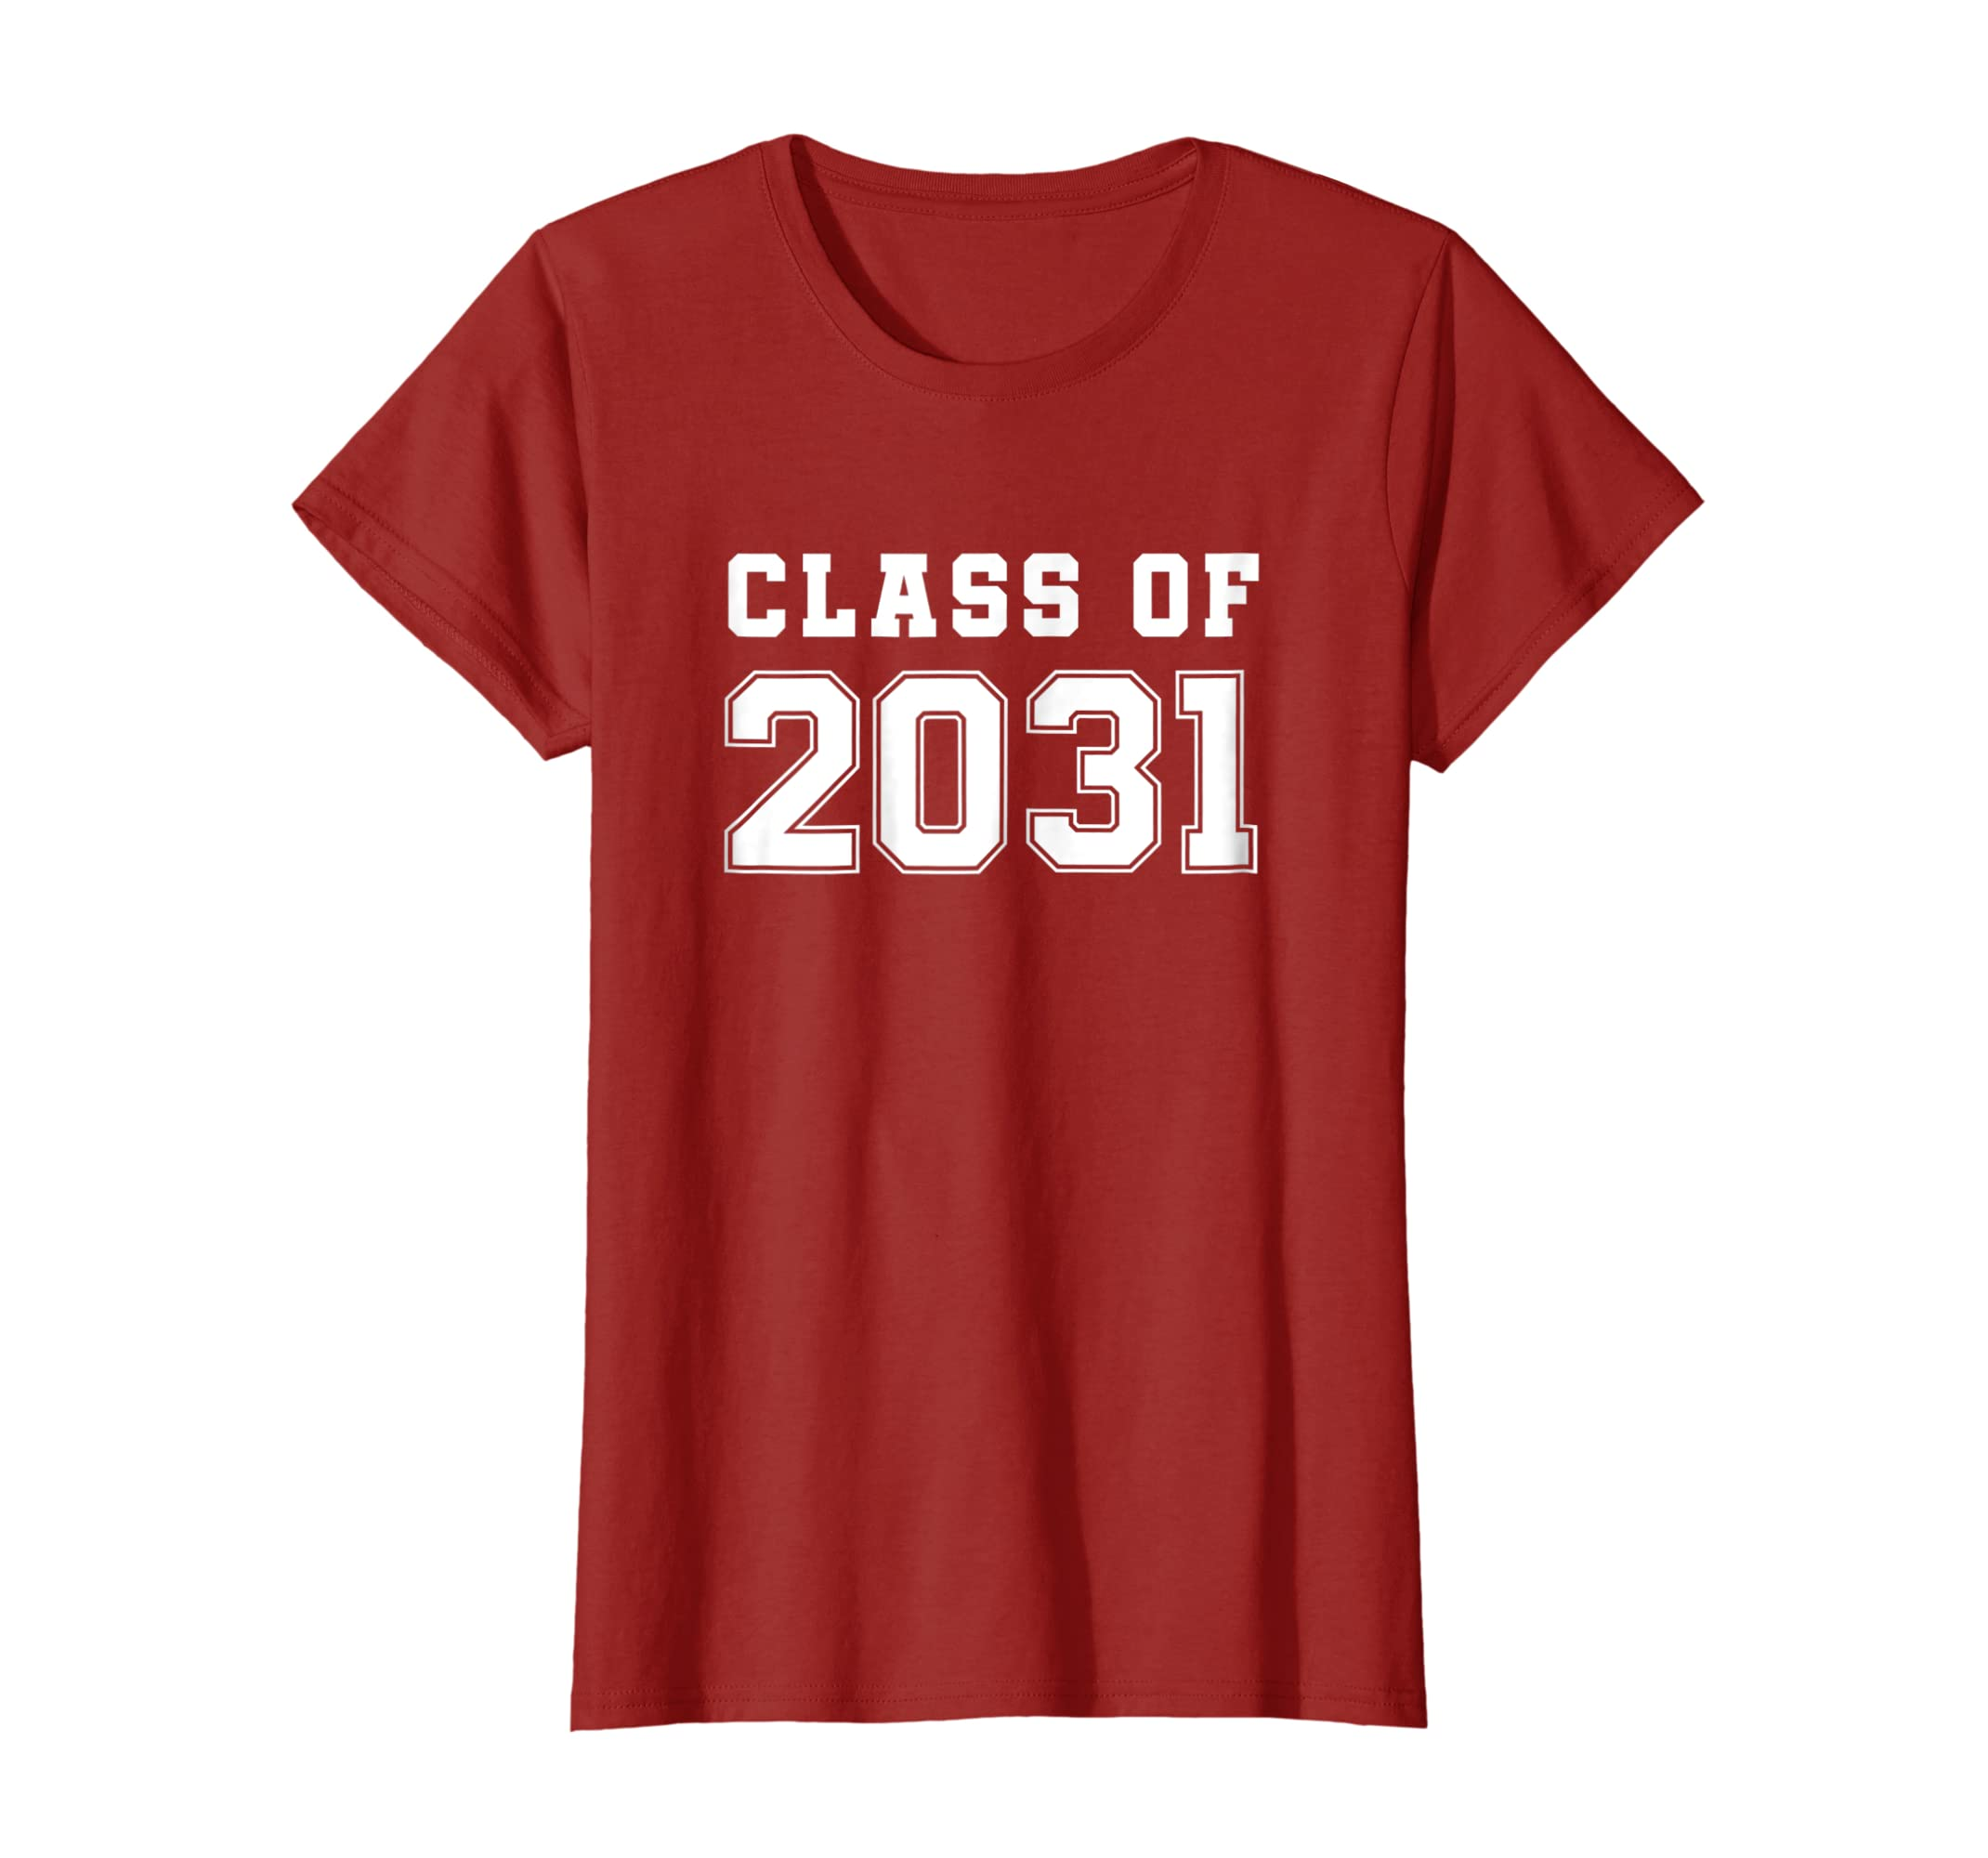 Class of 2031 T Shirt First Day of School Grow With Me Shirt-Protee